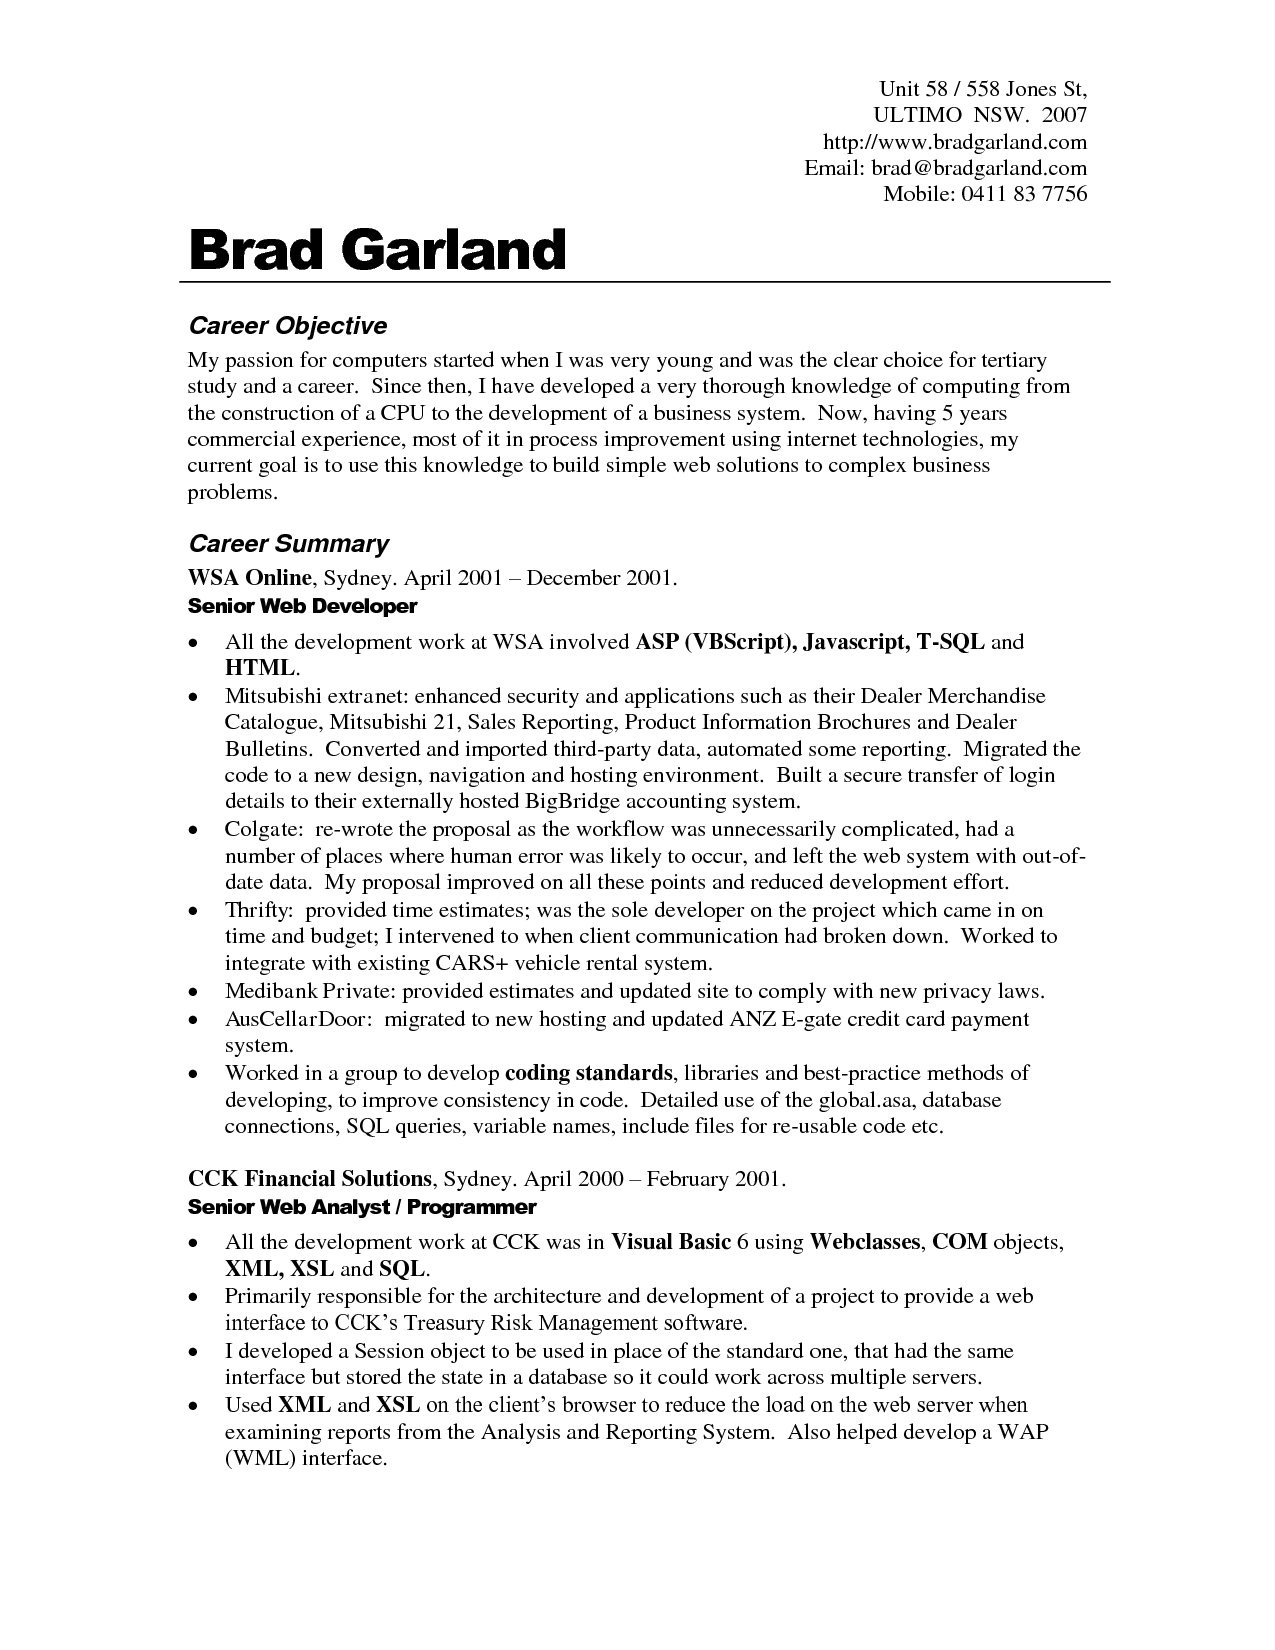 resume objectives examples best templateresume objective examples application letter sample - Good Resume Objectives Samples